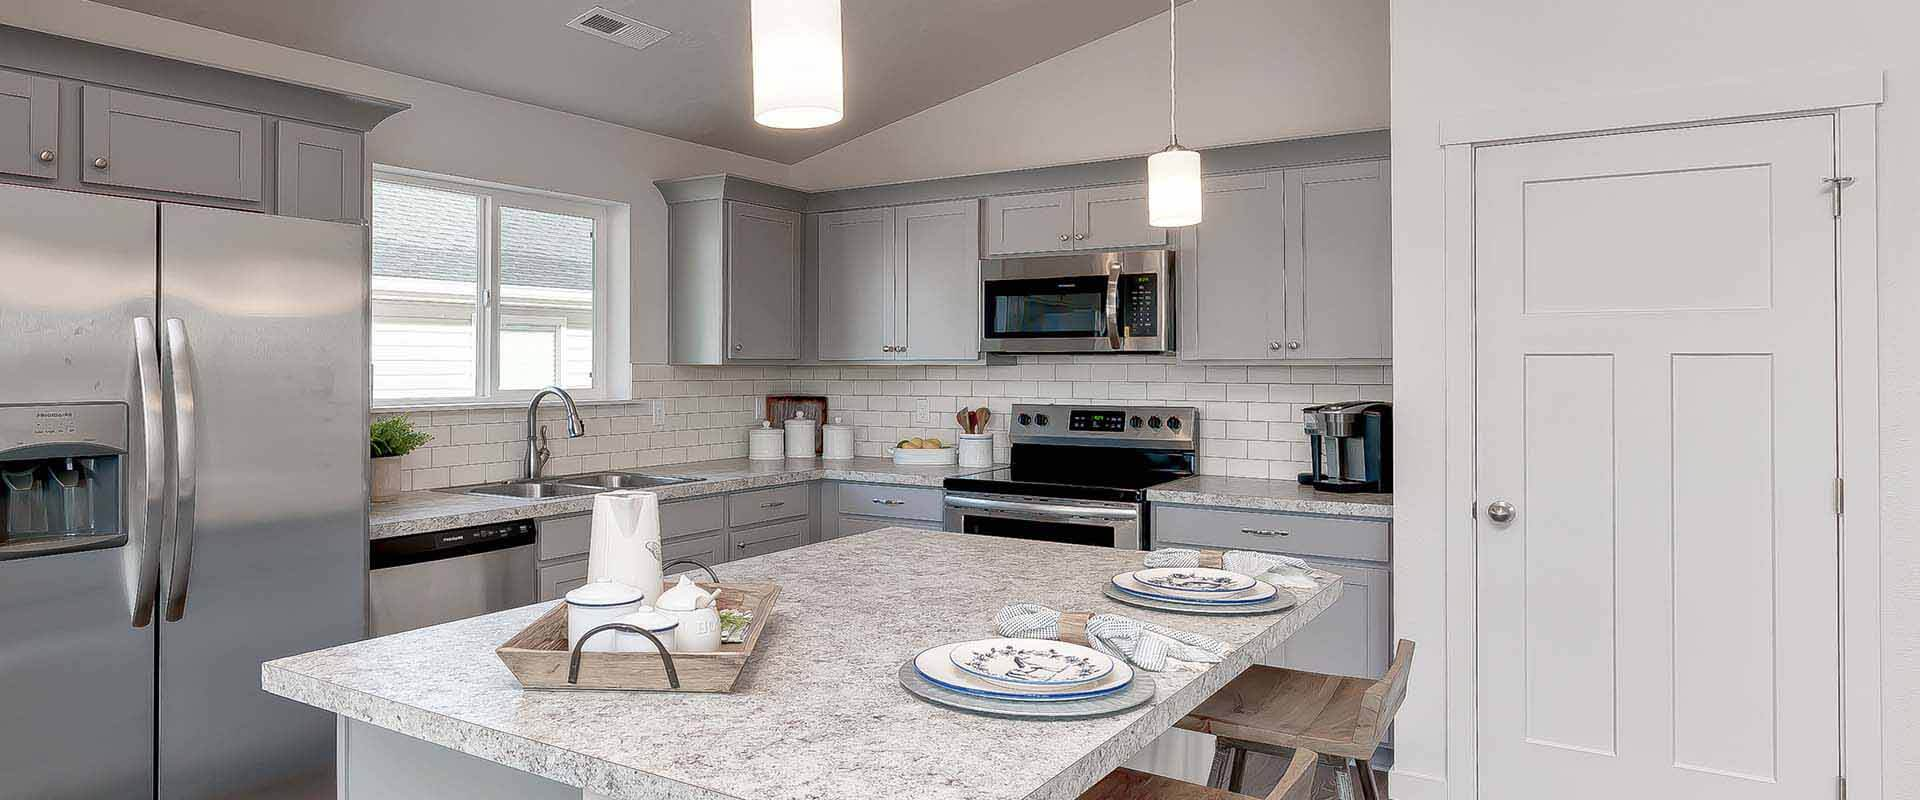 Birch-new-homes-boise-idaho-hubble-homes-kitchen.jpg